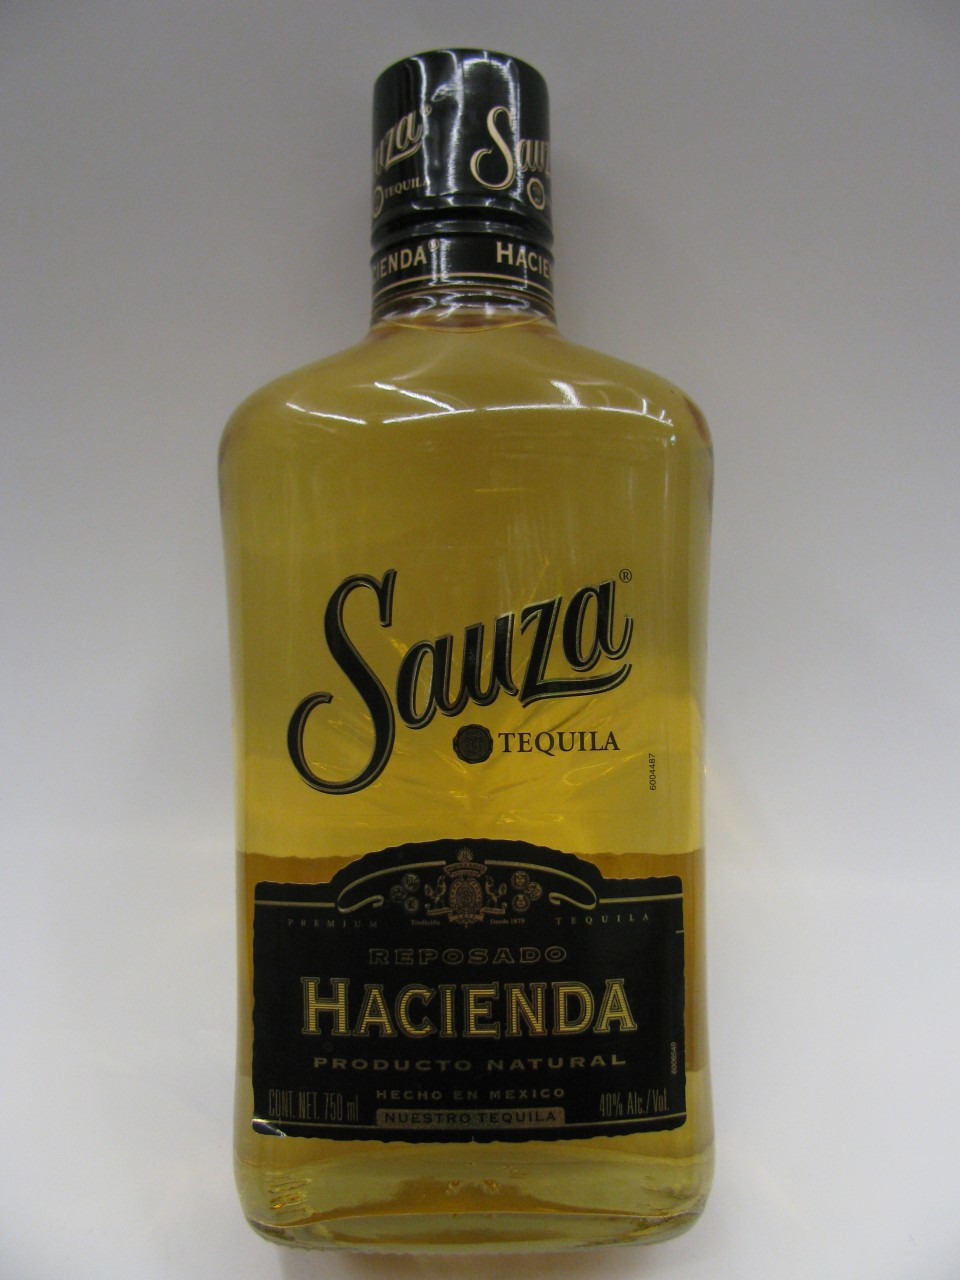 Tequila Hacienda Reposado Sauza Hacienda Reposado 750ml